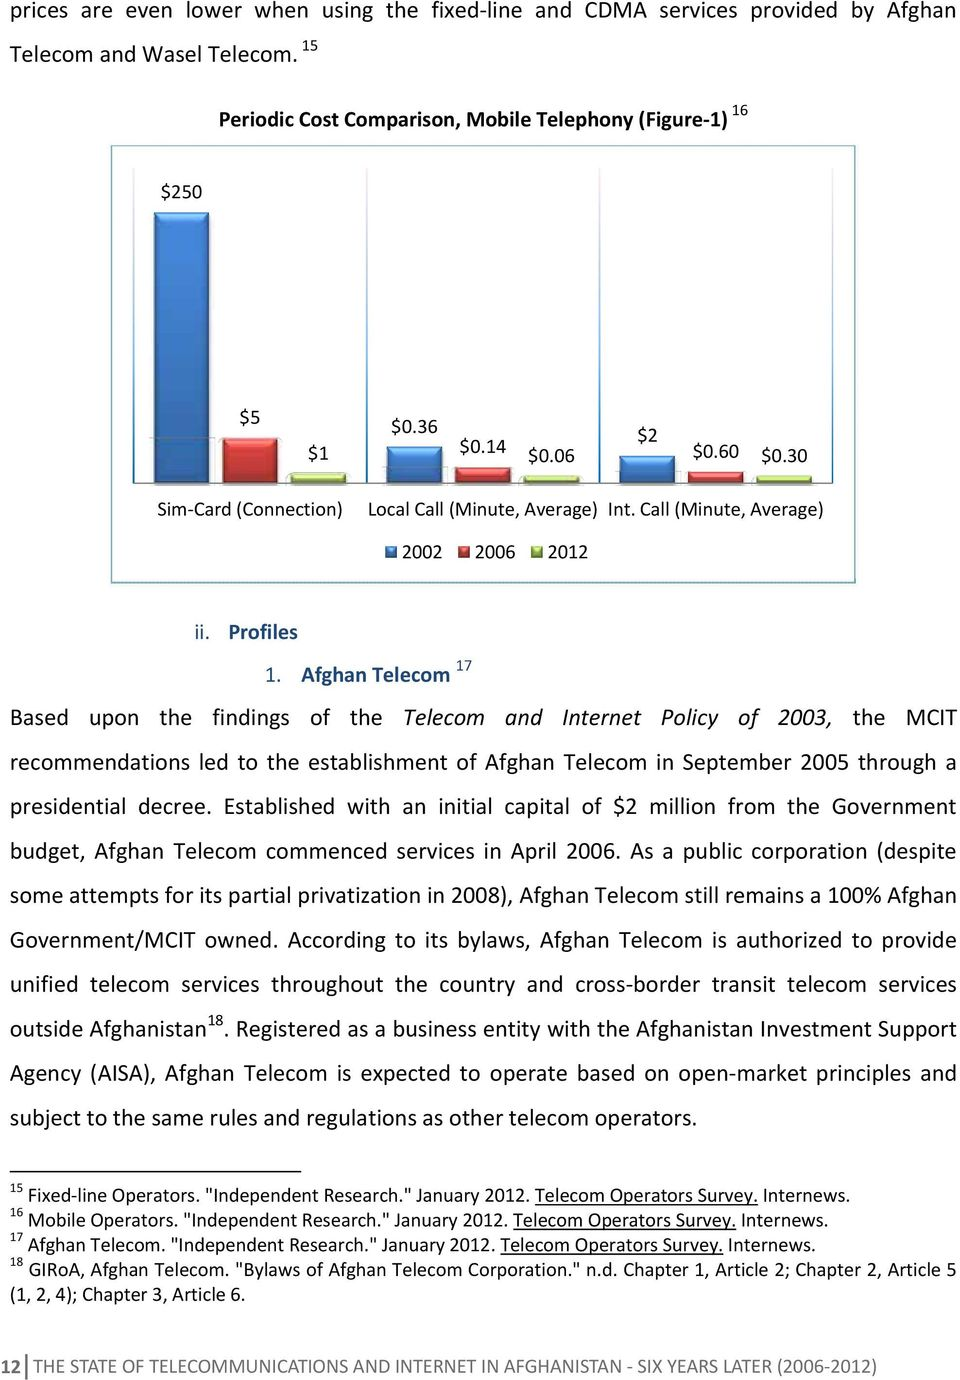 Afghan Telecom 17 Based upon the findings of the Telecom and Internet Policy of 2003, the MCIT recommendations led to the establishment of Afghan Telecom in September 2005 through a presidential